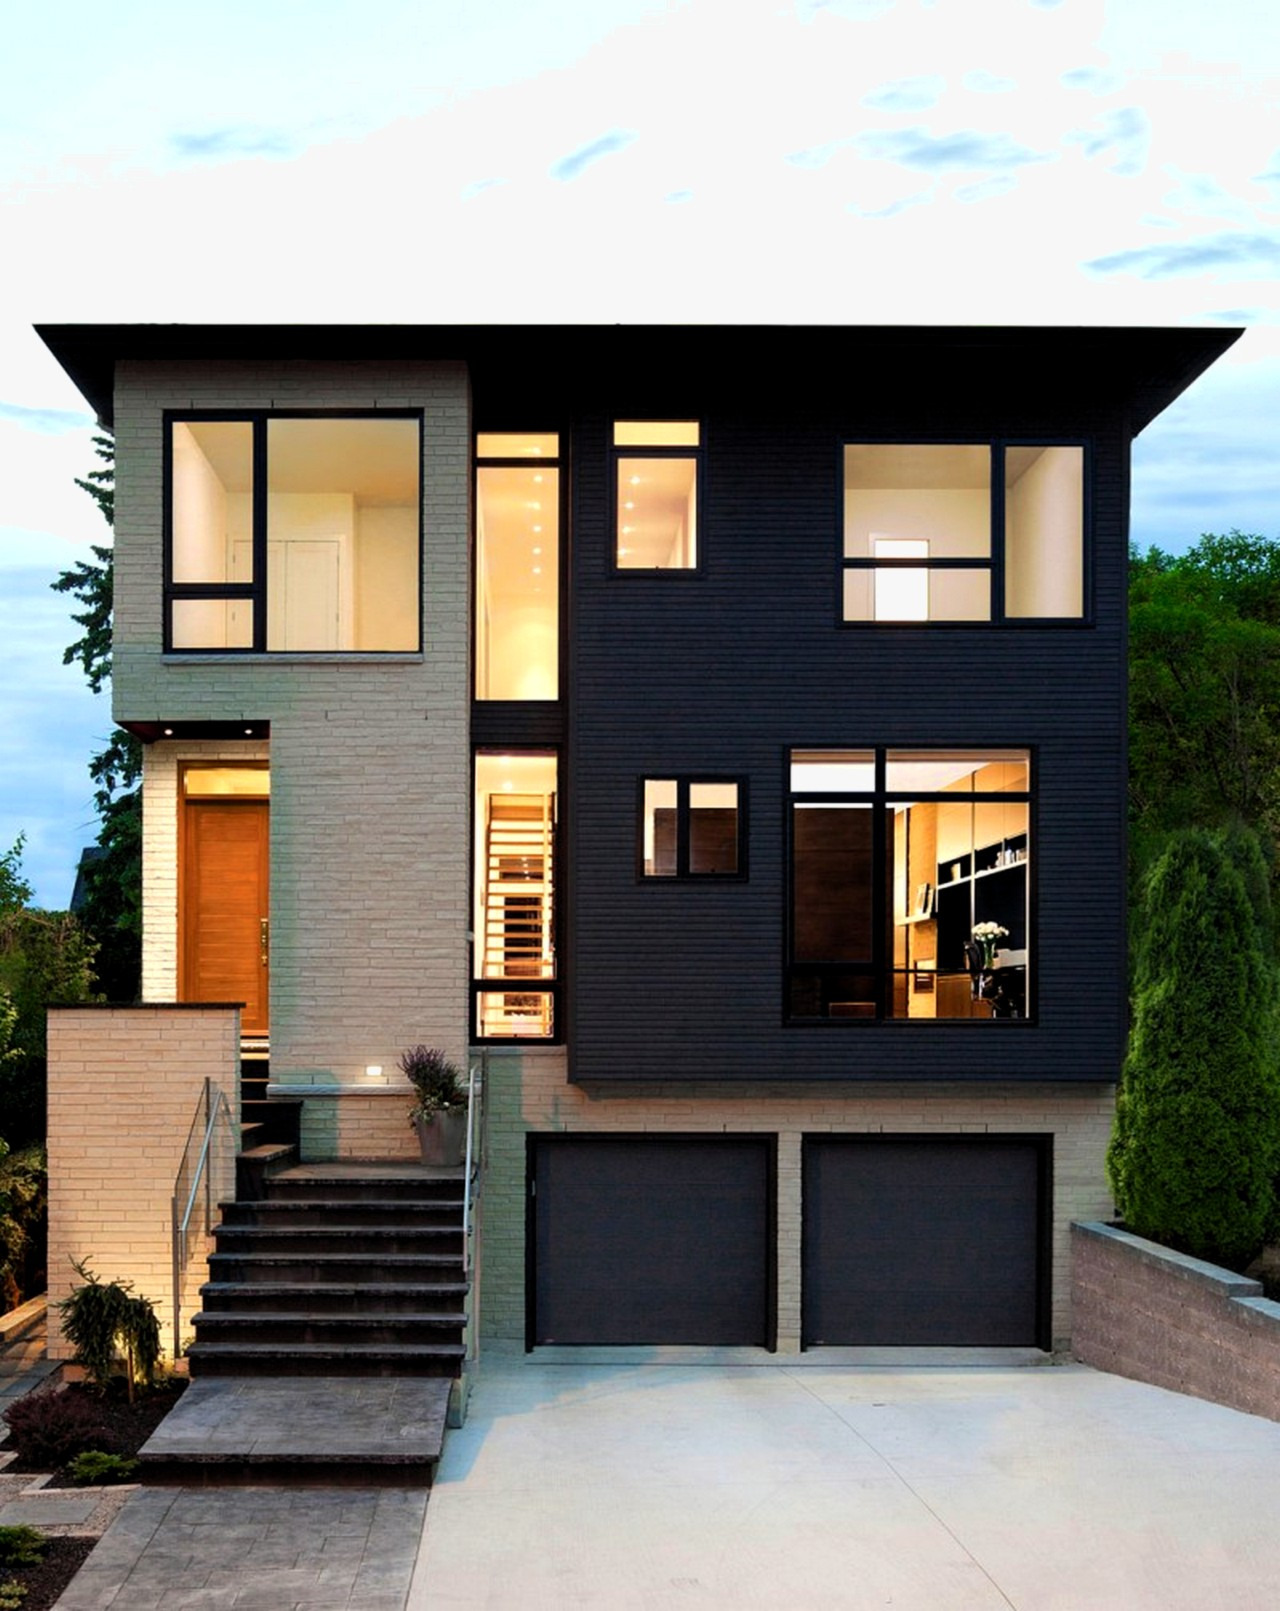 Modern Minimalist House Designs and Architectures Elegant Architectures Minimalist Home Design 2016 Hovgallery In